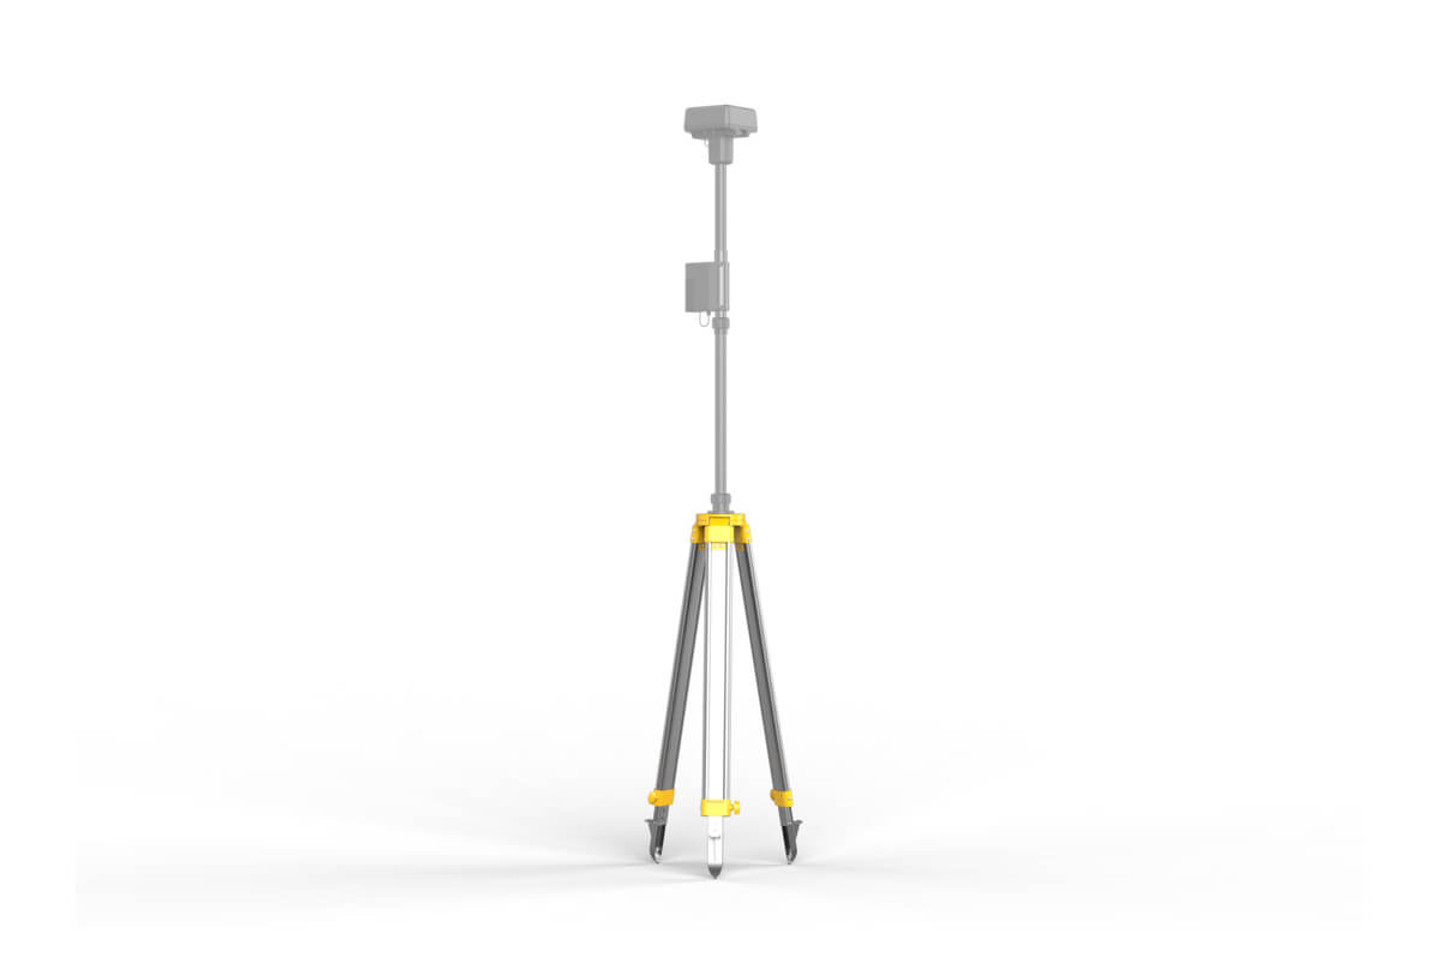 D-RTK 2 High Precision GNSS Mobile Station - Tripod